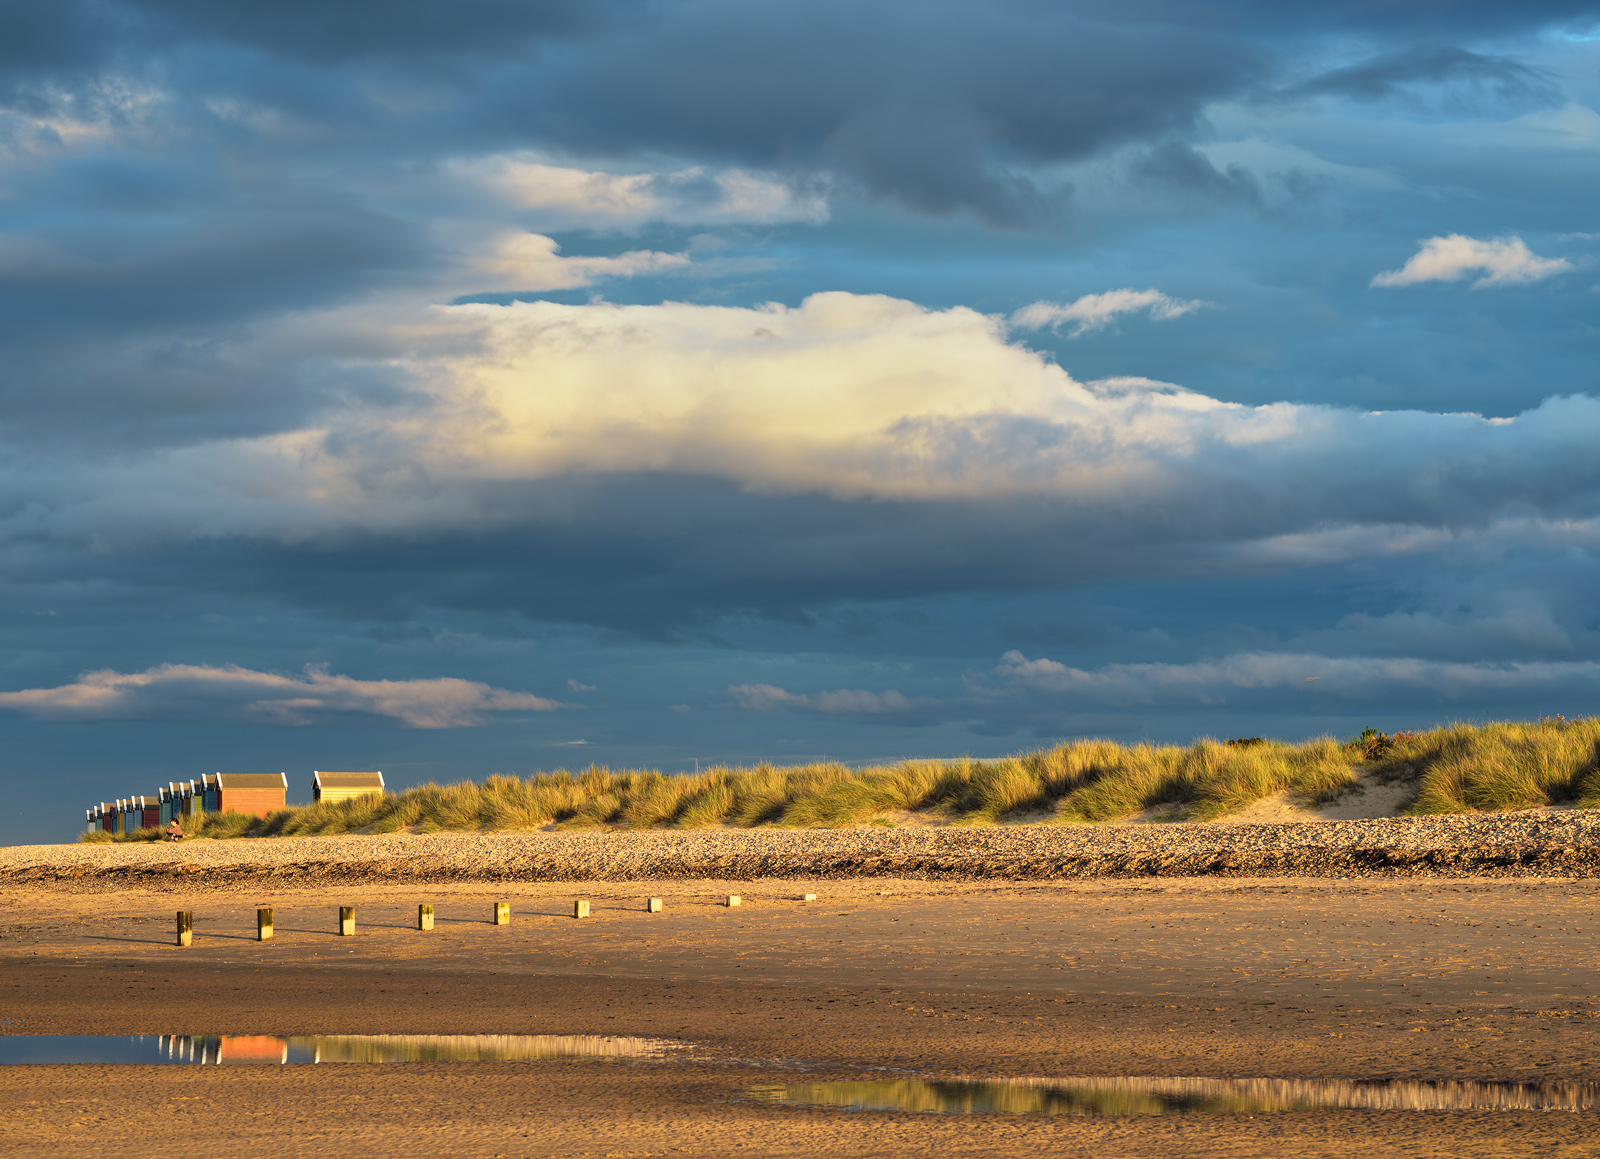 Golden sunlight streams through the clouds close to sunlight spot lighting the Findhorn huts beach and dunes whilst an epic moody sky glowers down from above.